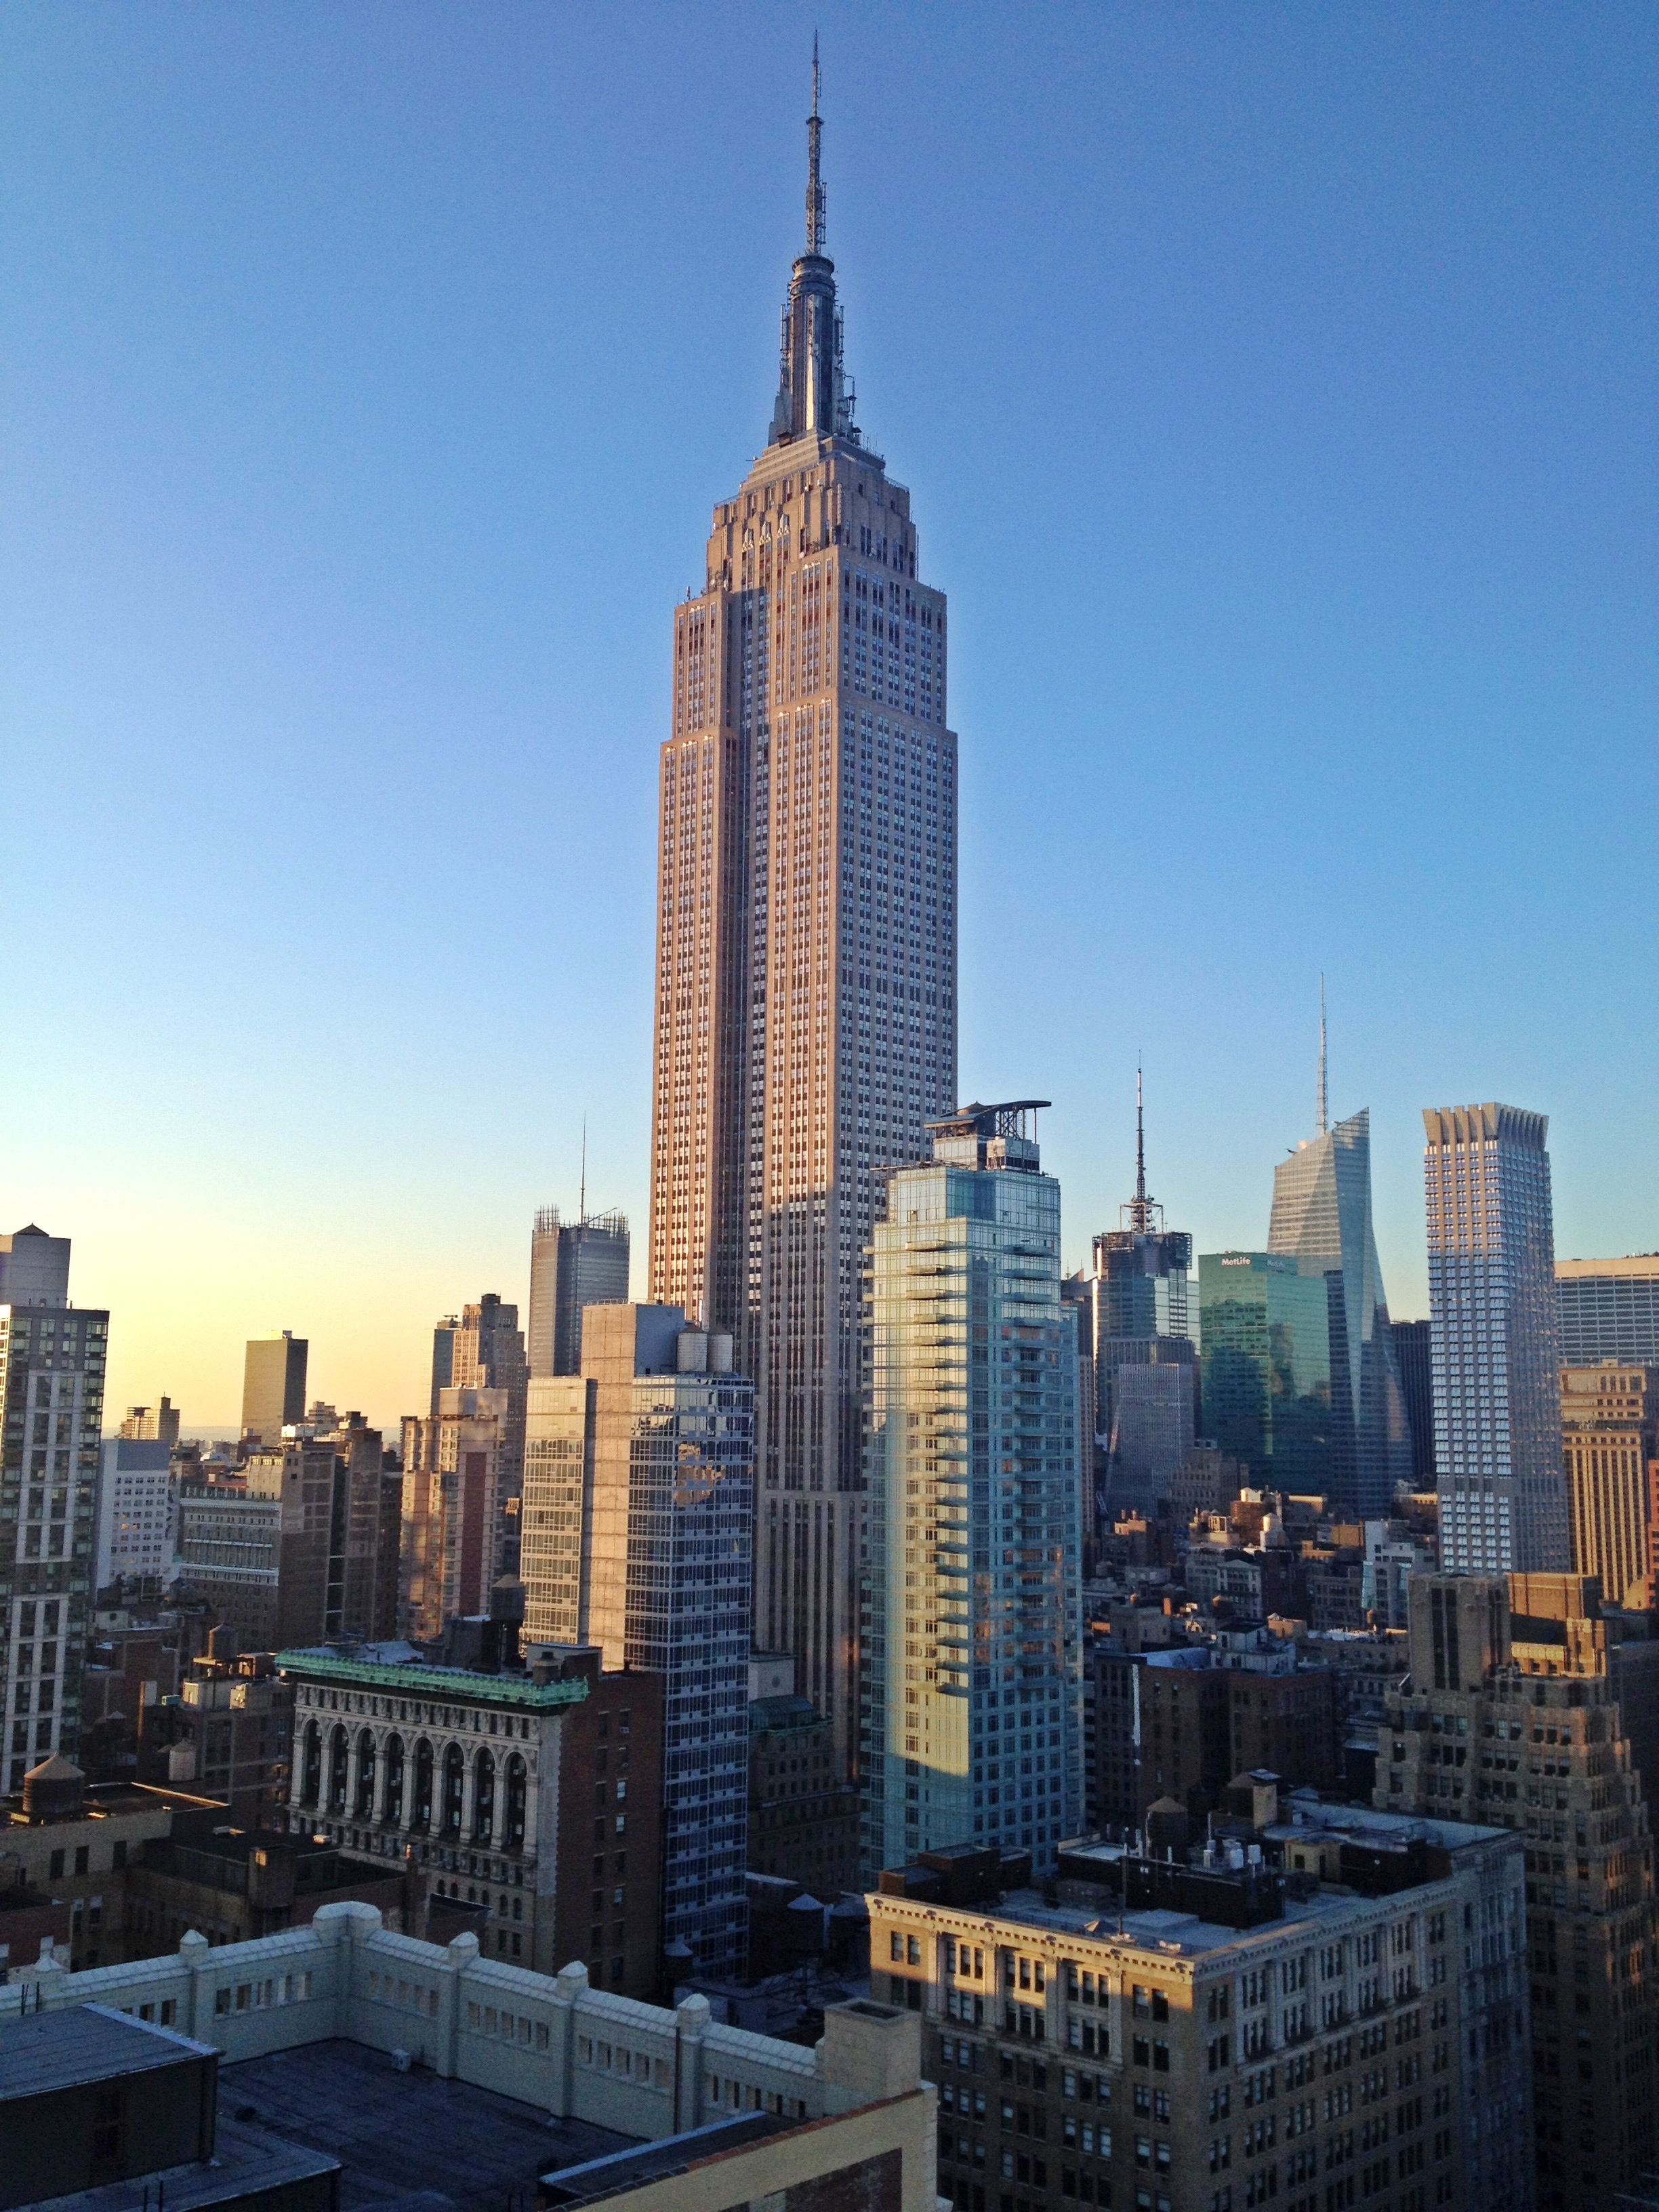 The History and Architecture of the Empire State Building